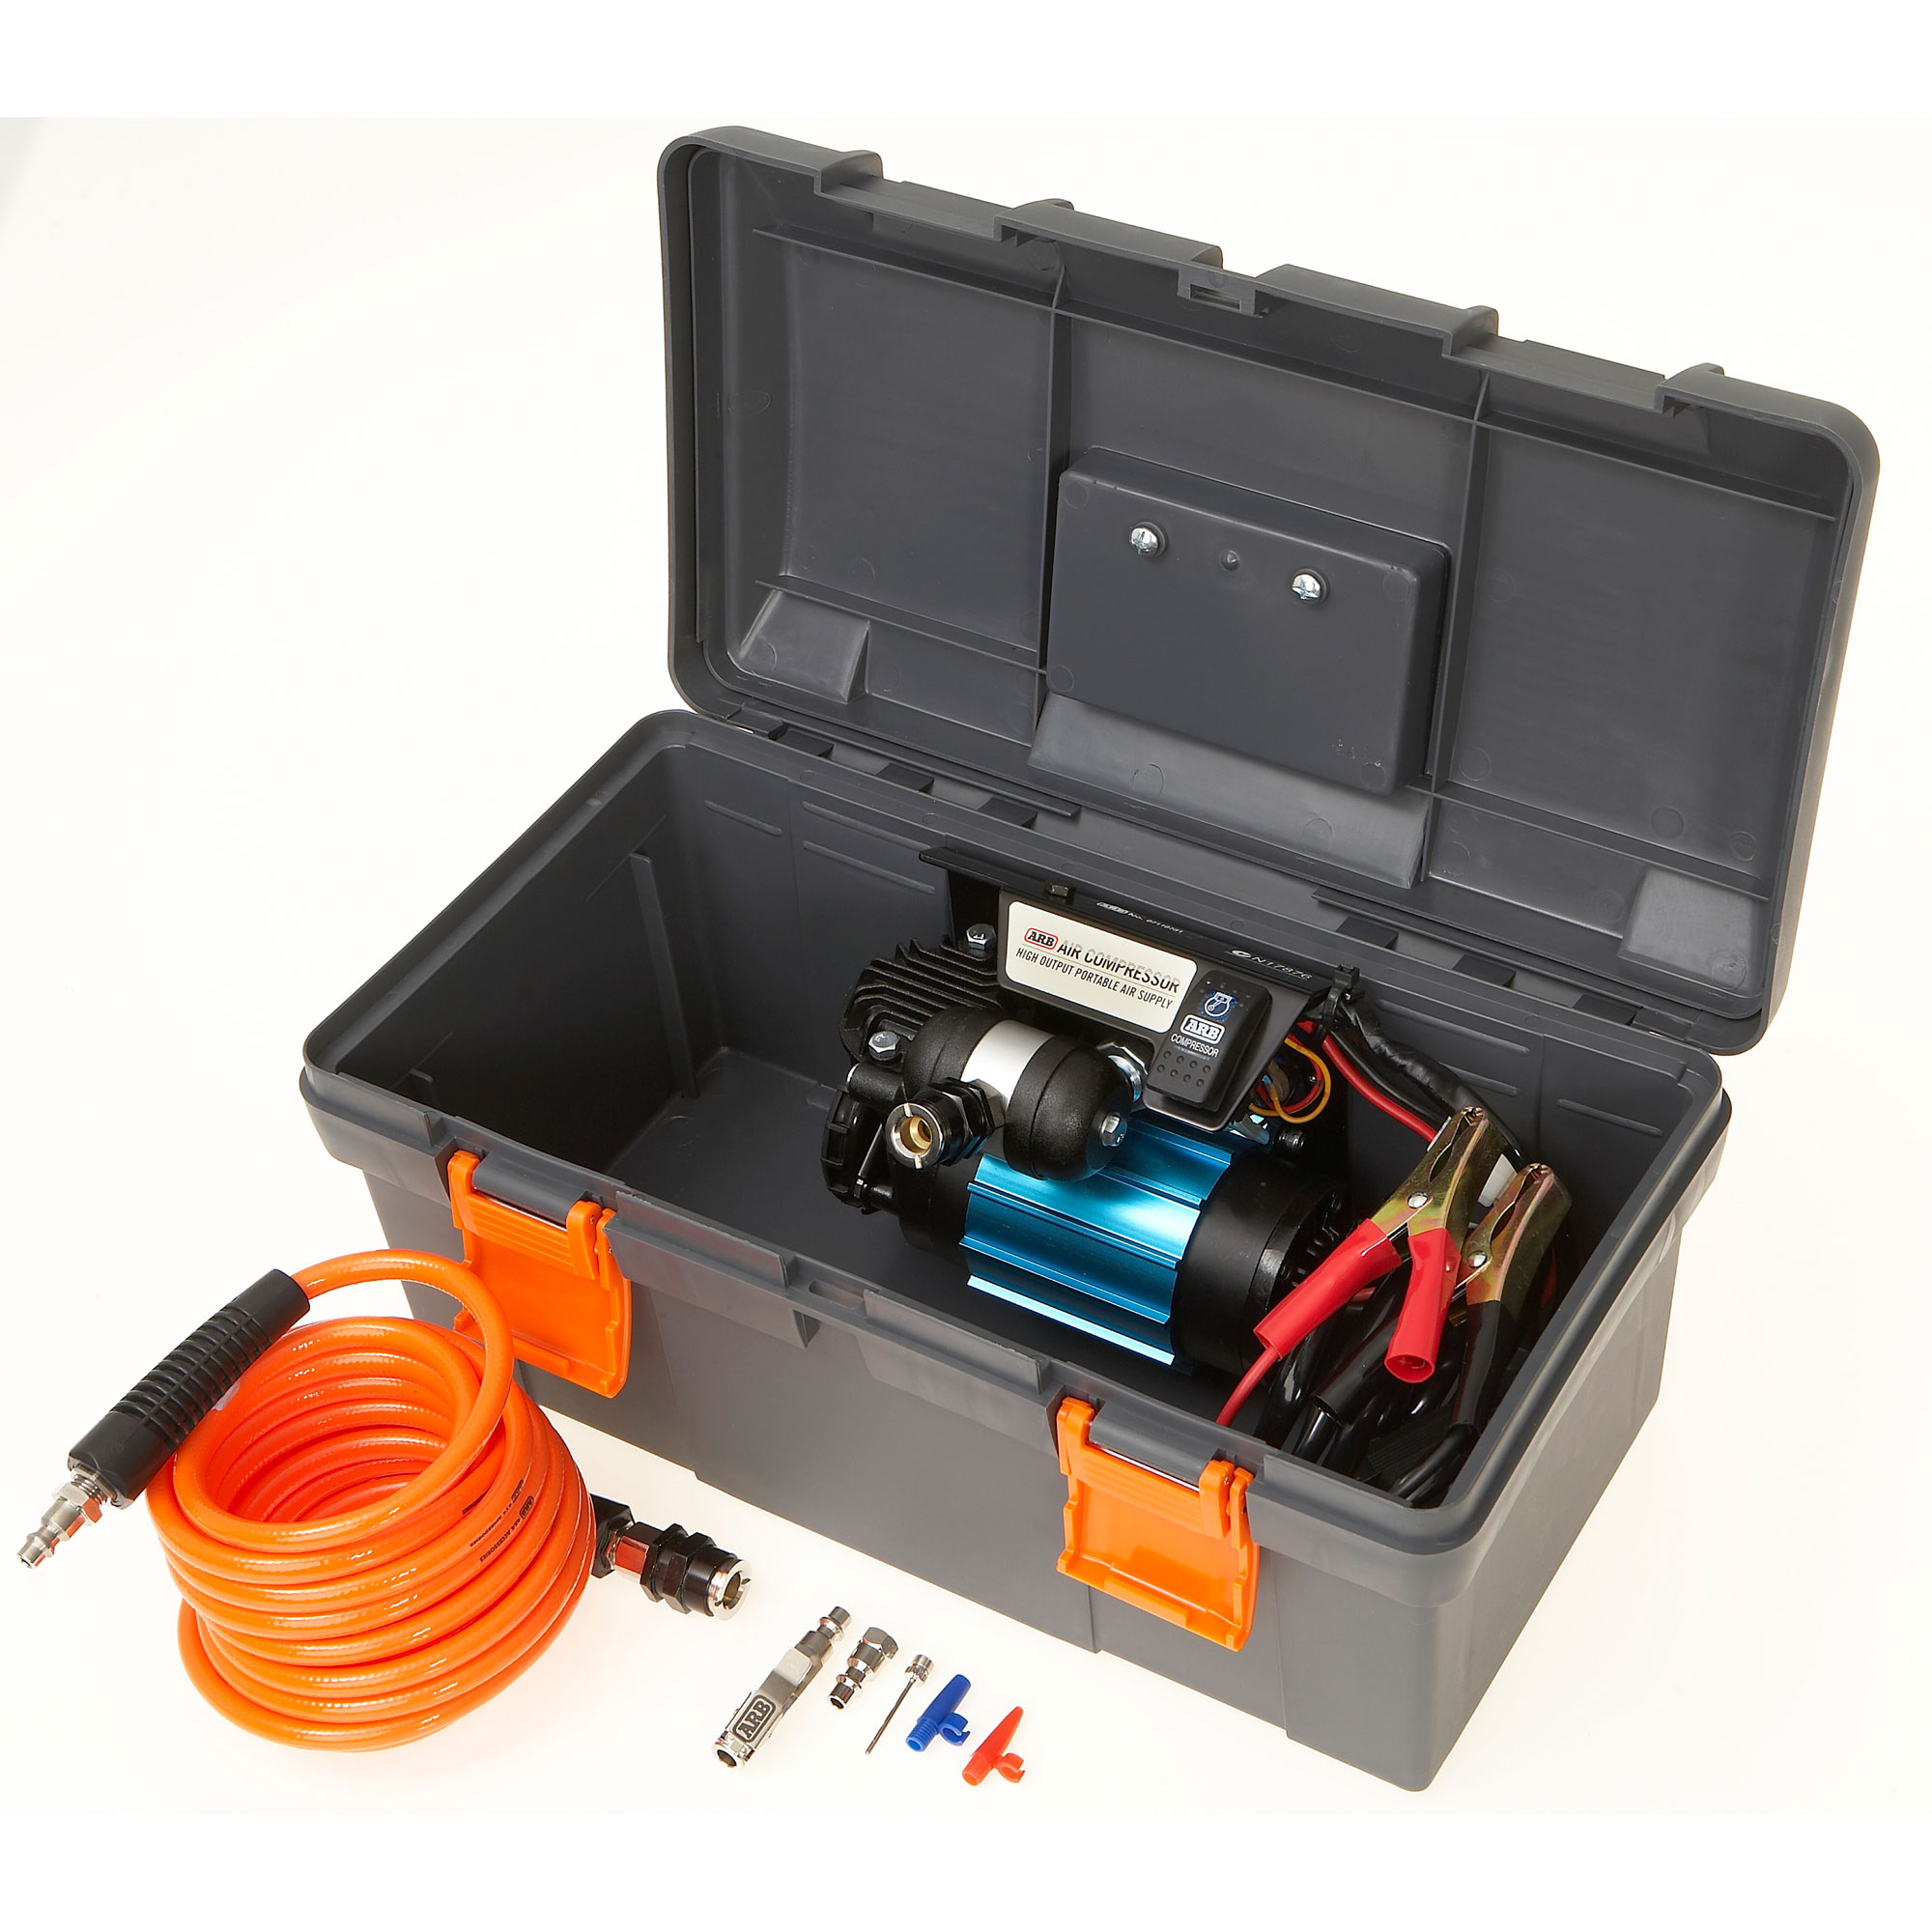 ARB CKMP12 Portable High Performance On Board 12V Vehicle Air Compressor System